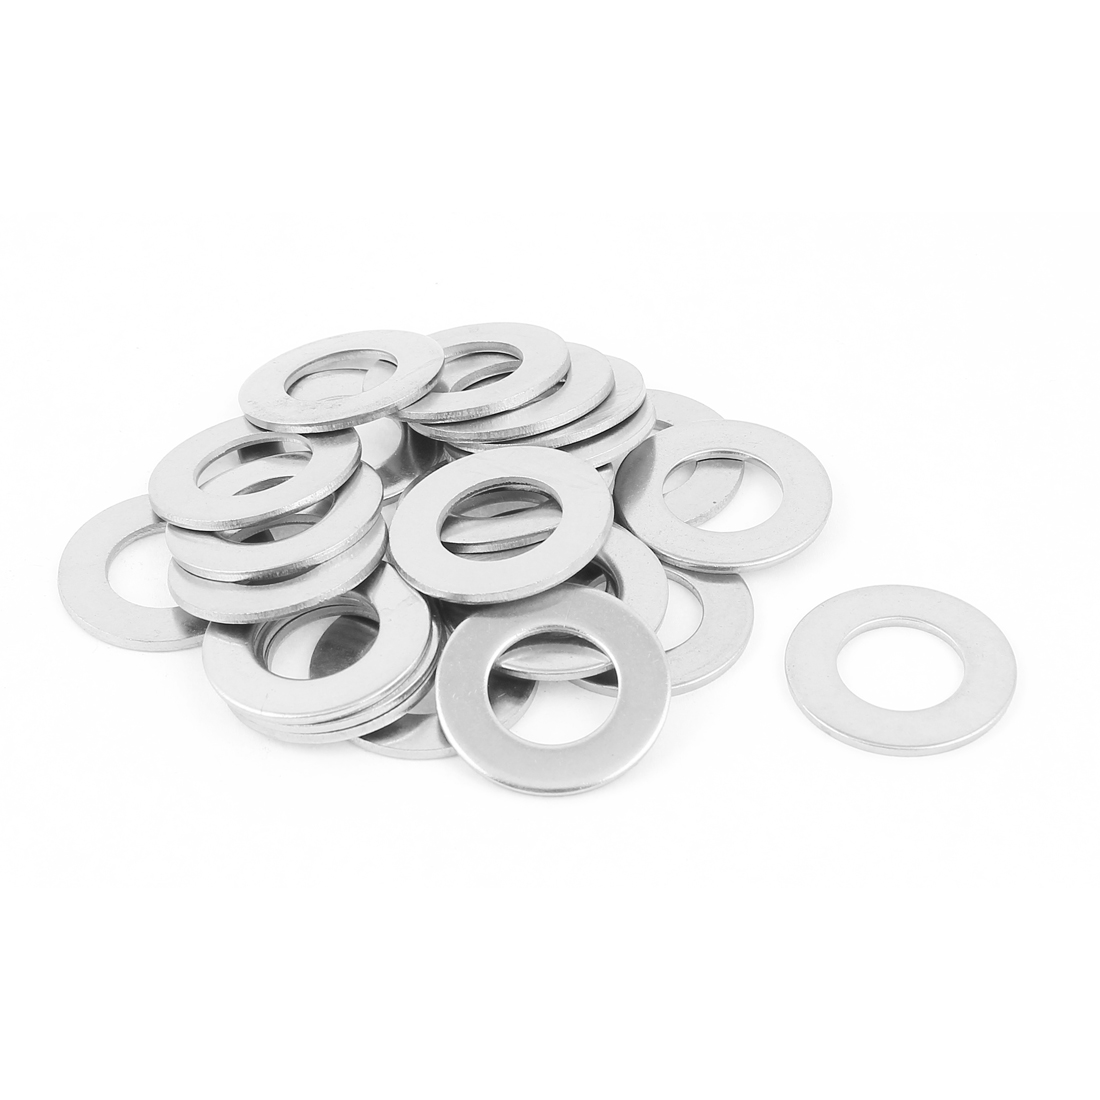 25Pcs M16 x 30mm x 2mm 304 Stainless Steel Flat Washer for Screw Bolt